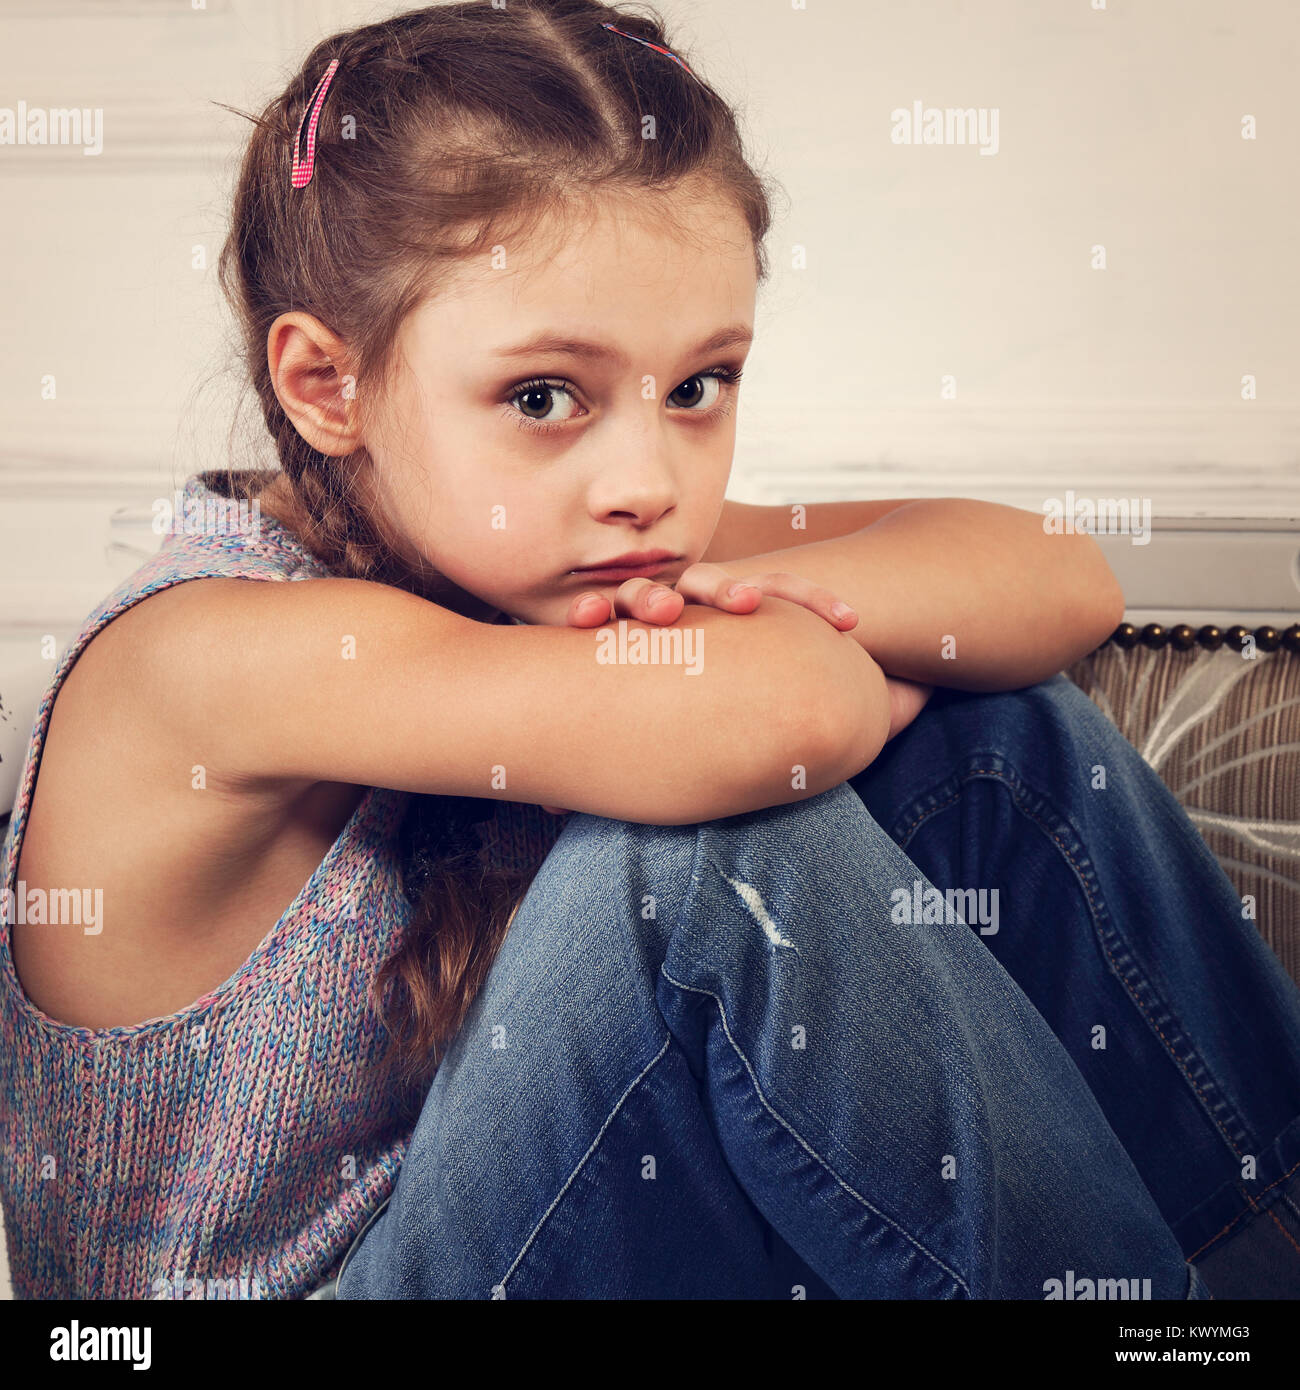 5af5292cc Sad thinking and dreaming kid girl sitting on the bench in blue jeans and  blouse and